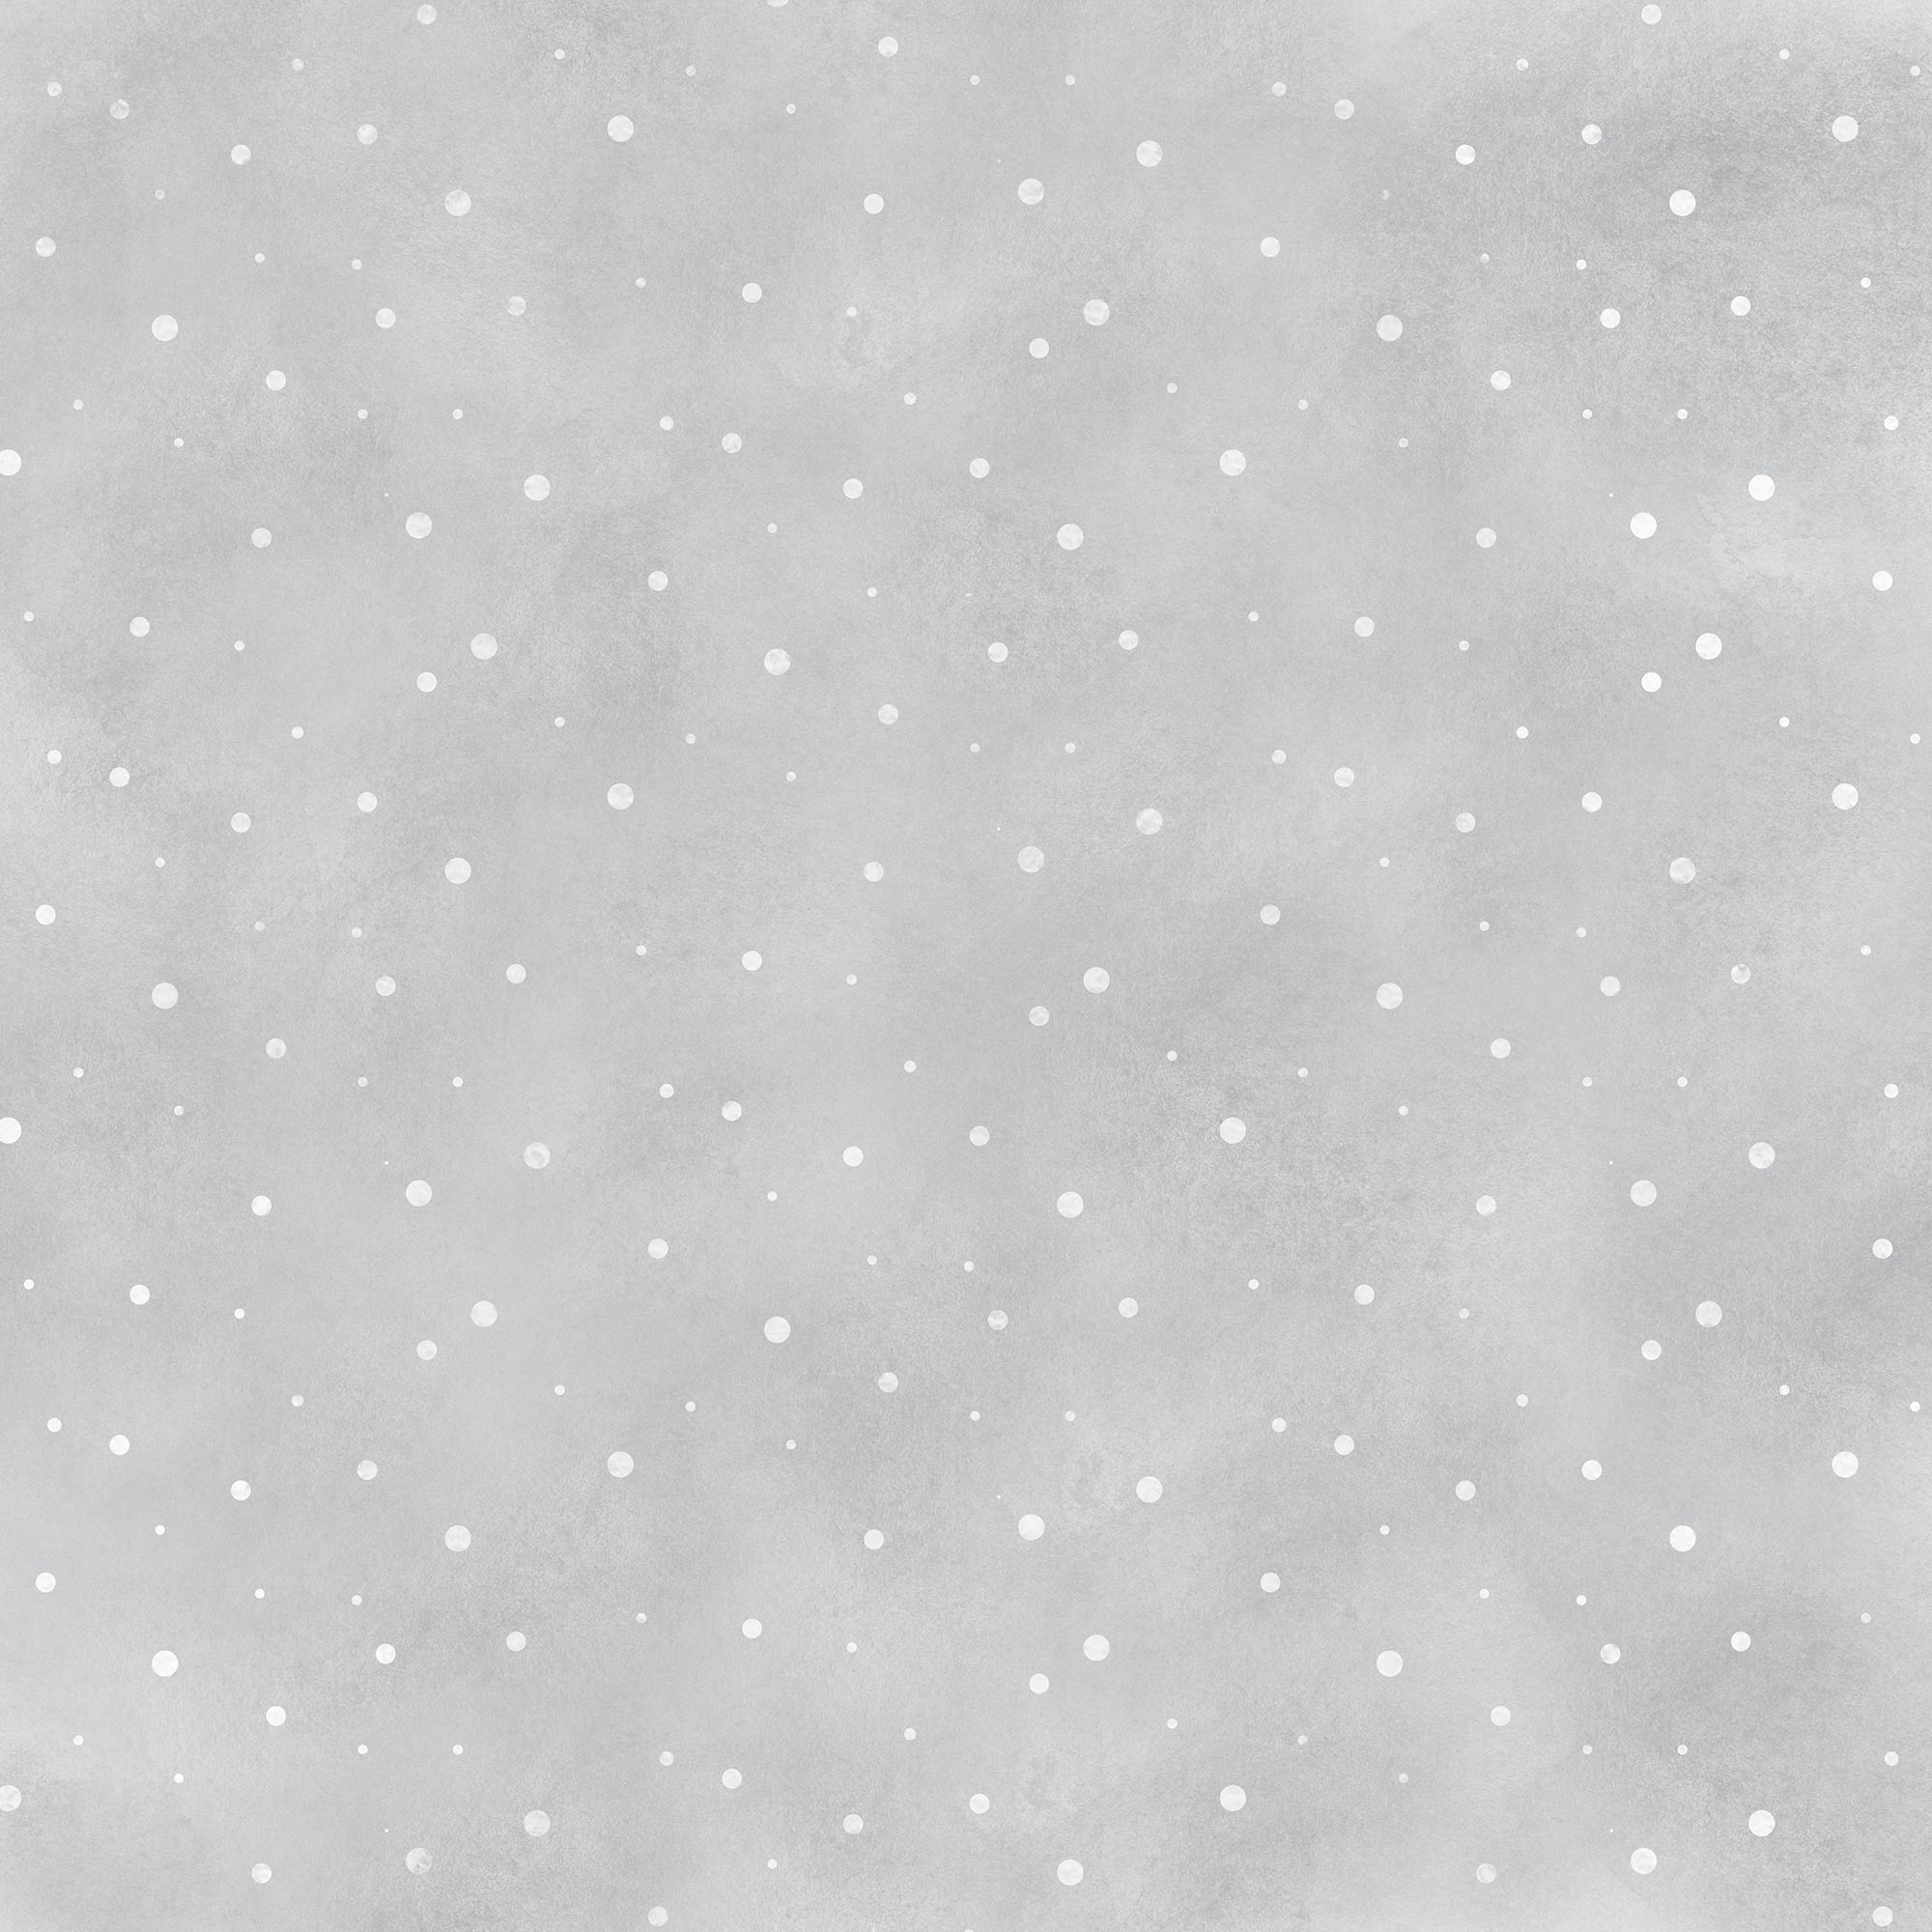 Whimsy Wishes Double-Sided Cardstock 12X12-Falling Snow